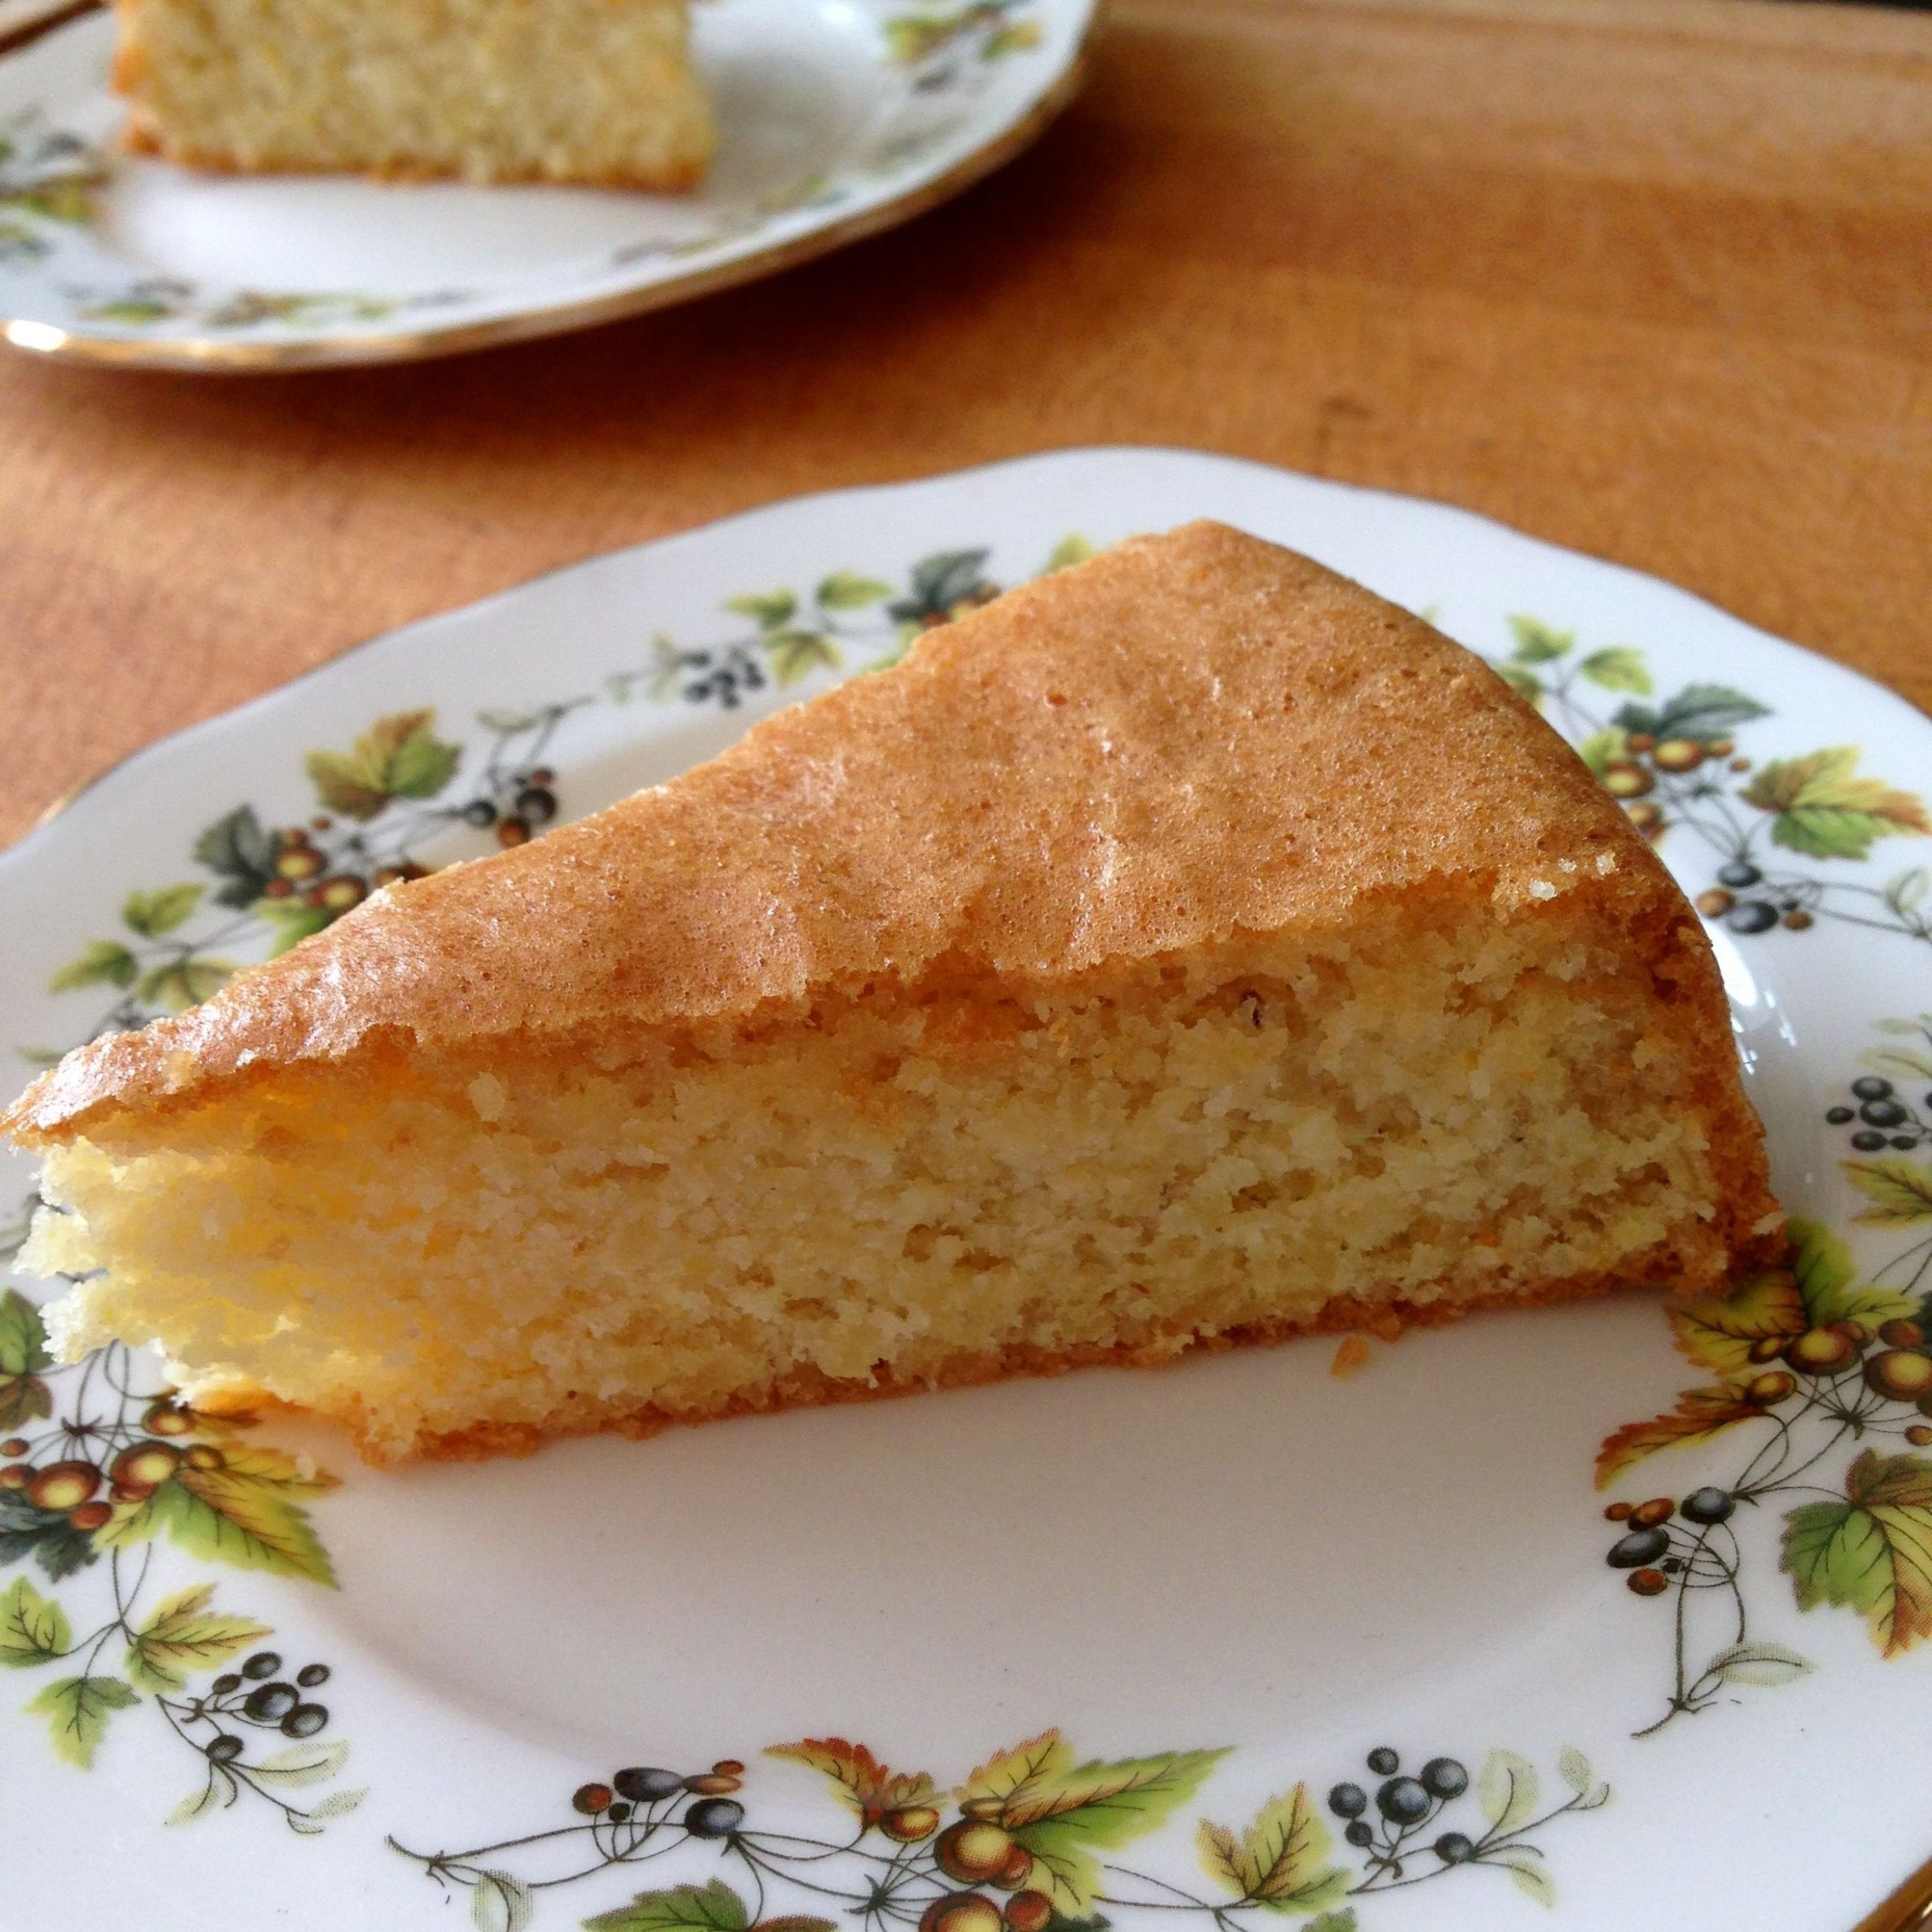 A delicious sugar-free and gluten-free lemon and almond cake that ...